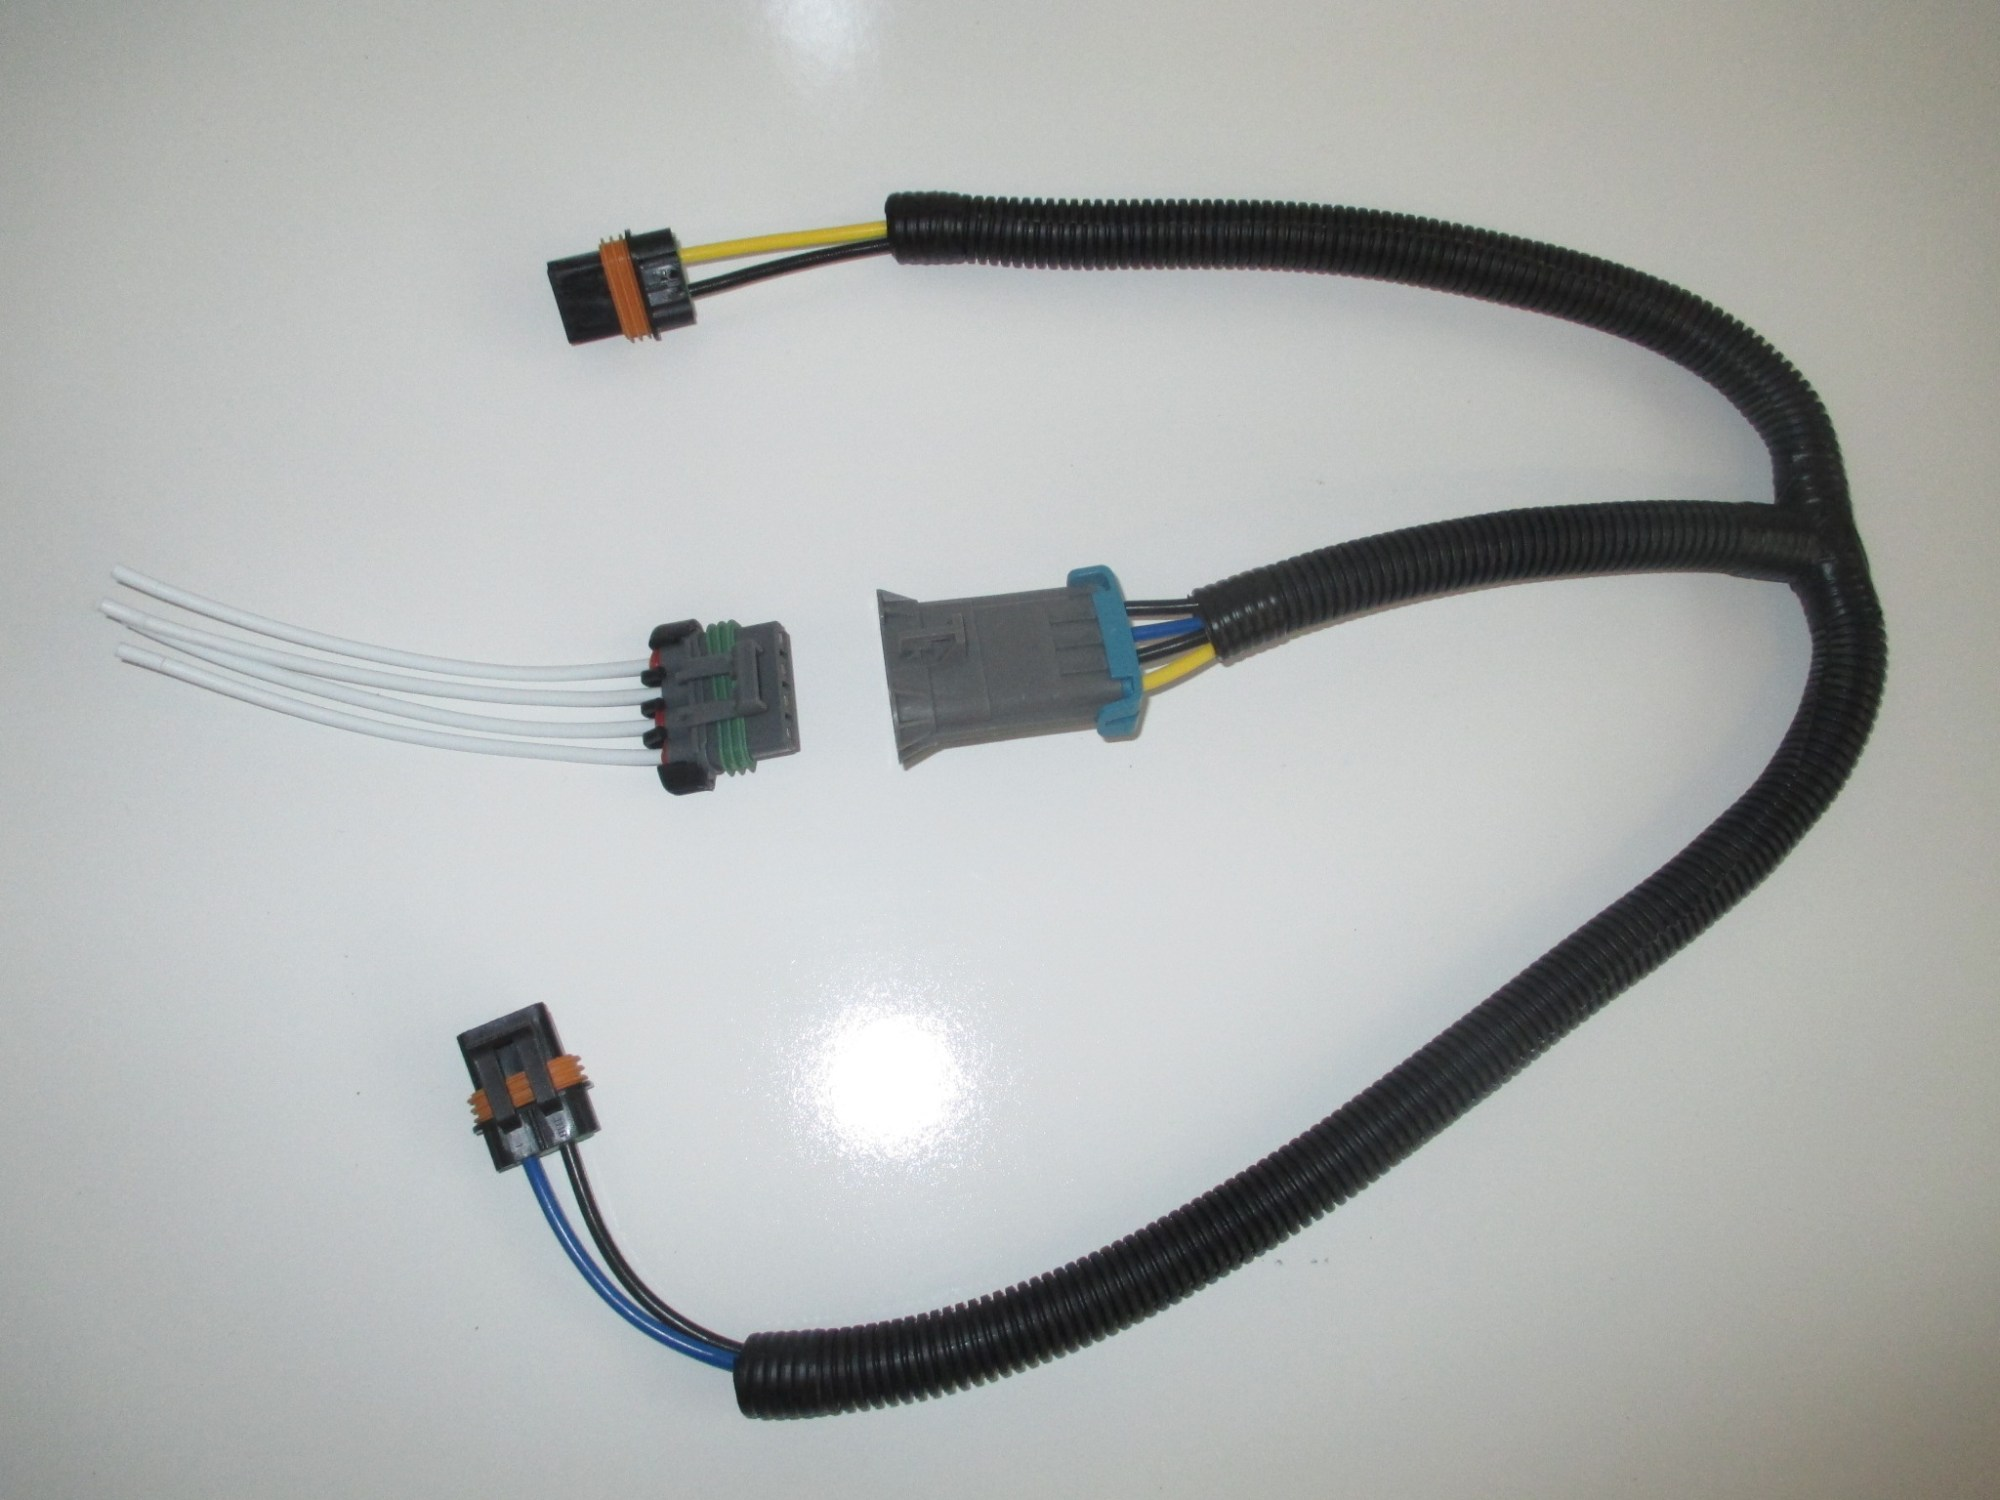 hight resolution of gm dual cooling fan harness and pigtail for f body style fans and similar ls1